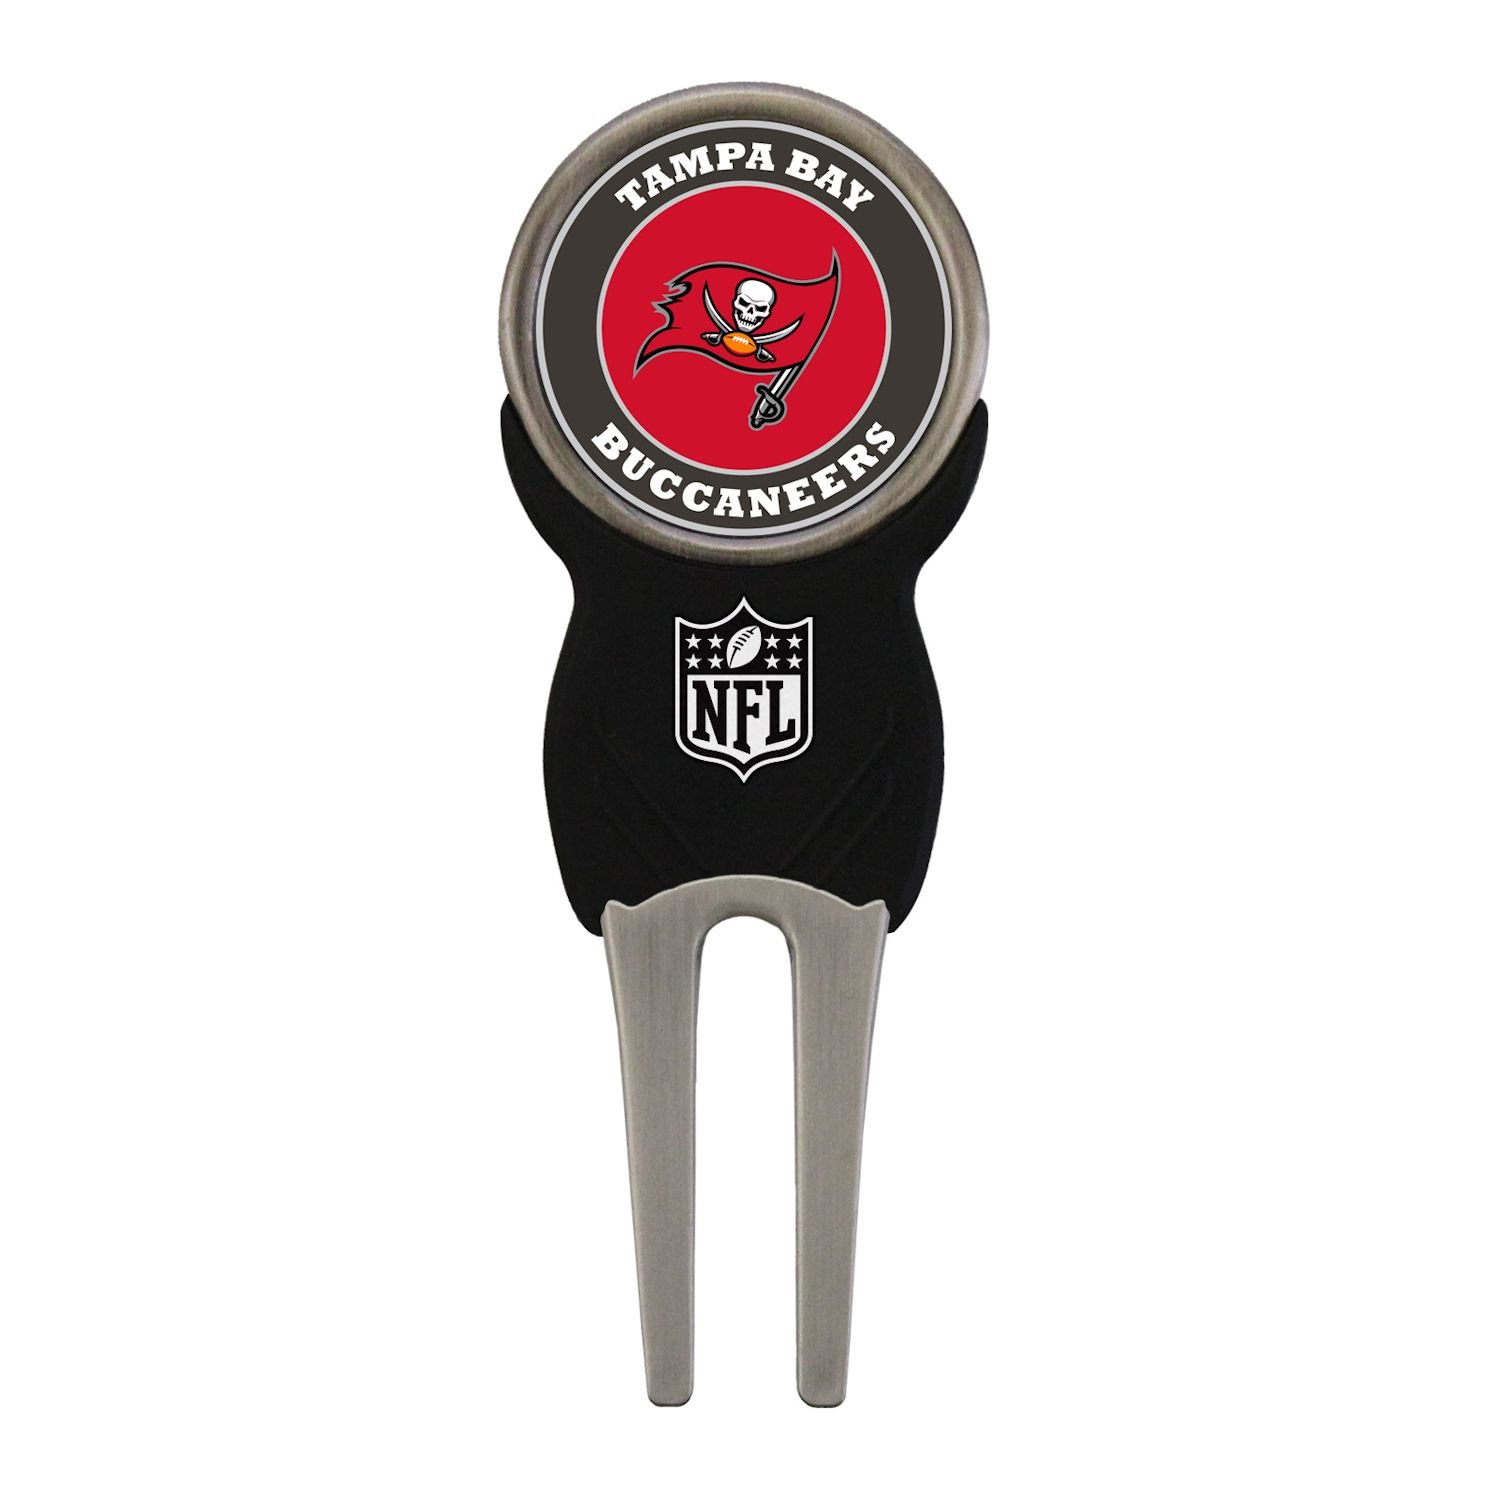 Tampa Bay BuccaneersゴルフDivot Tool and Ball Marker   B078FNTVZX